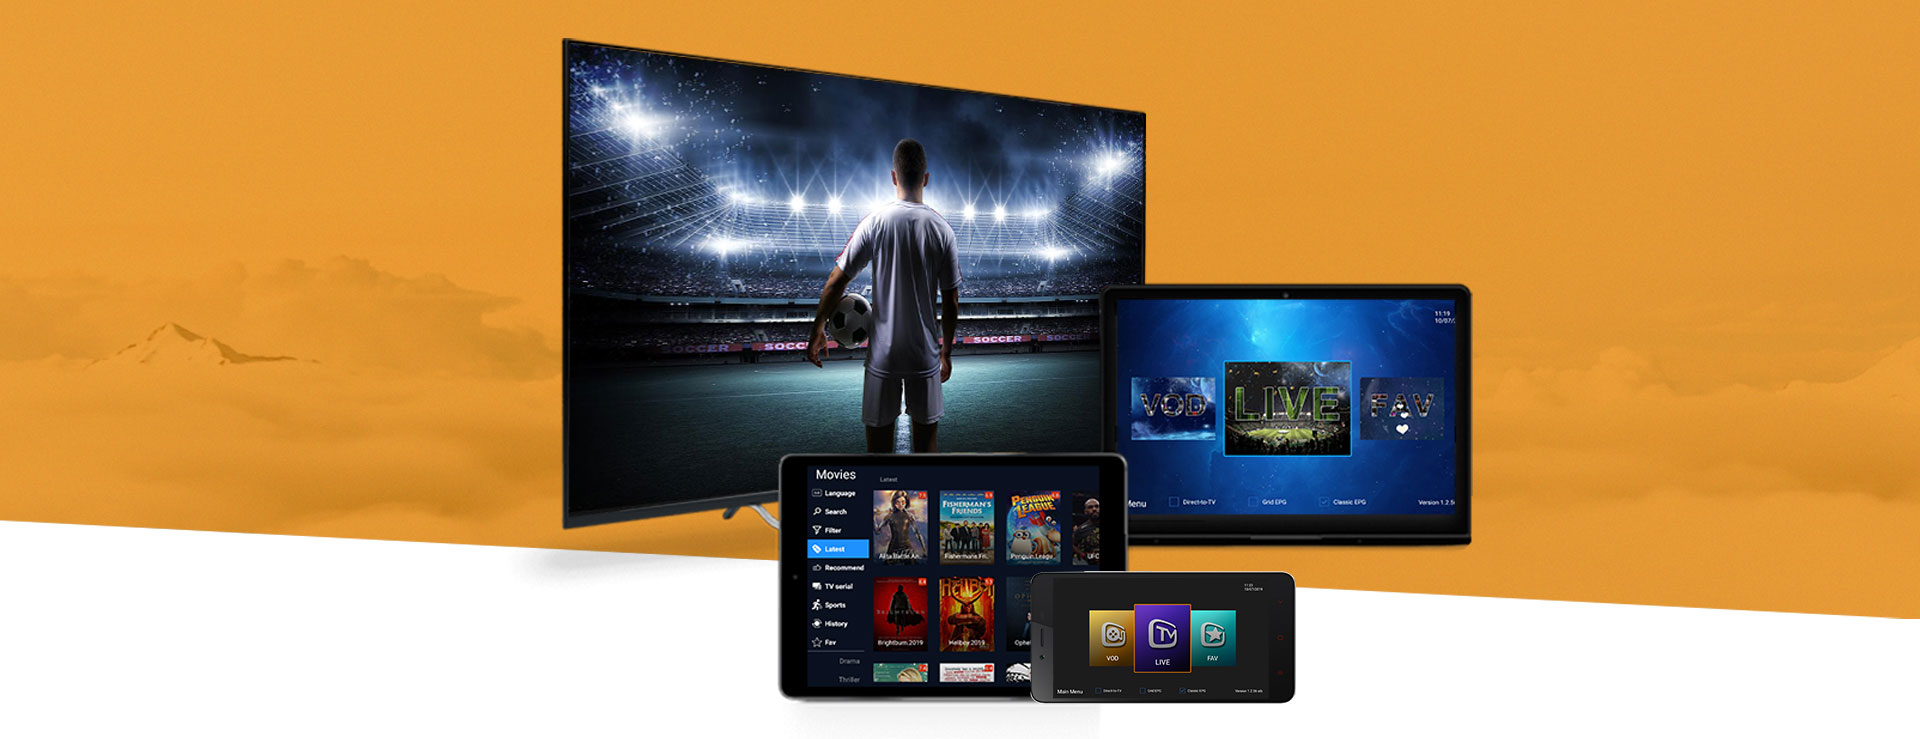 Buy IPTV Service from AirTV, the world best IPTV provider